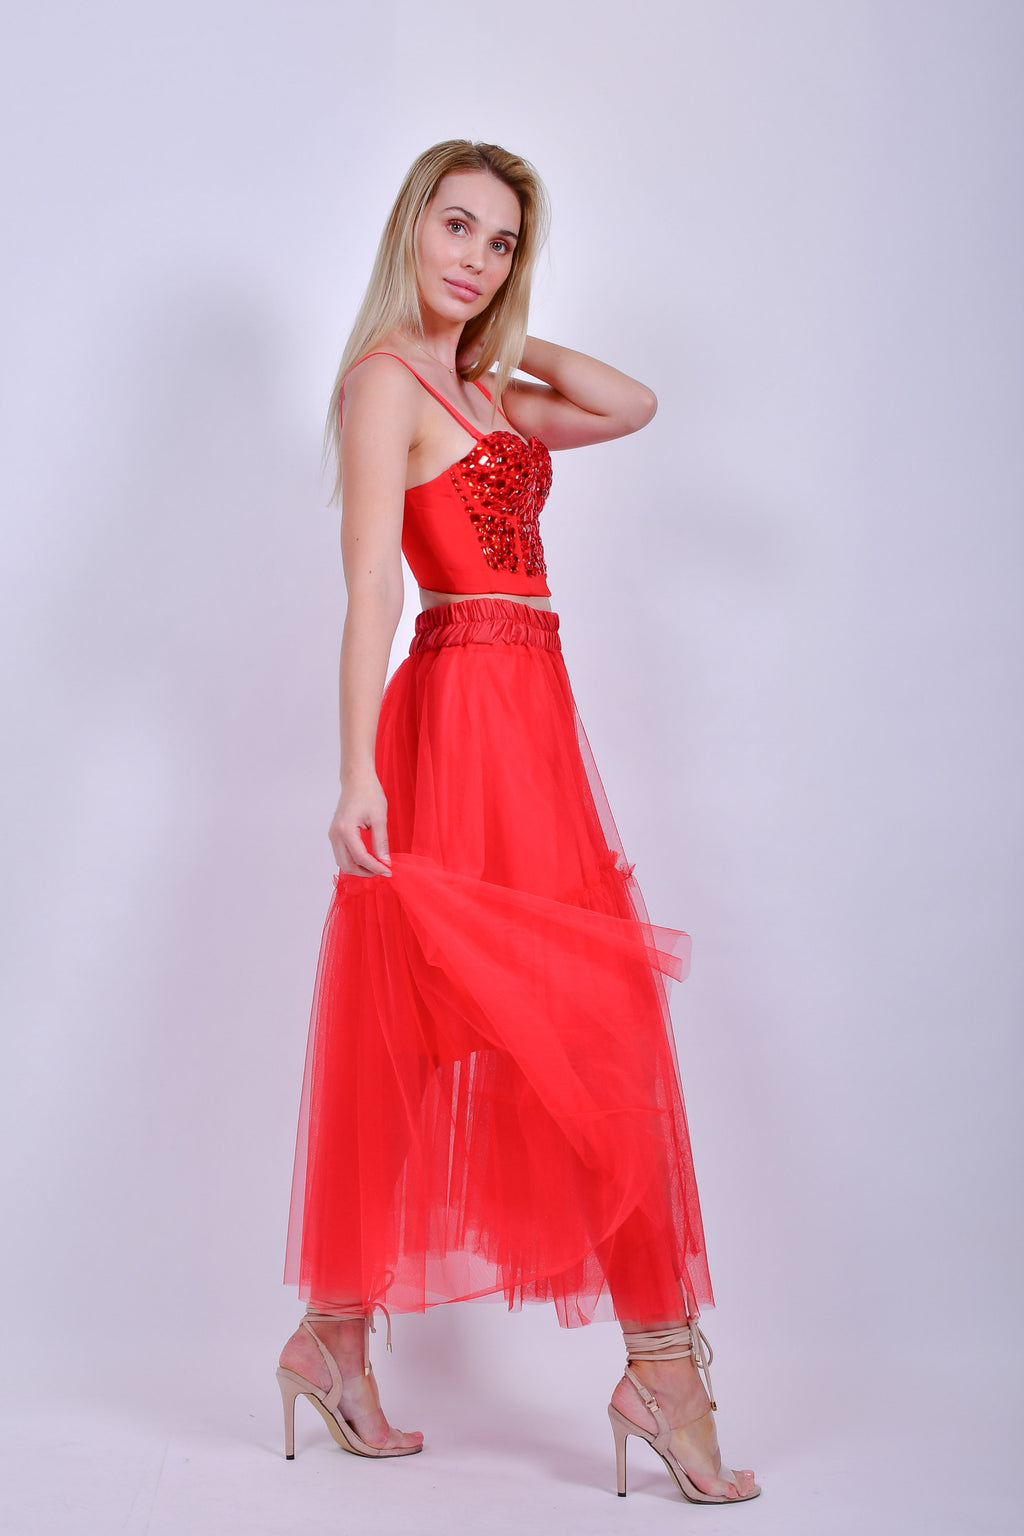 Red Midi Tulle Dress